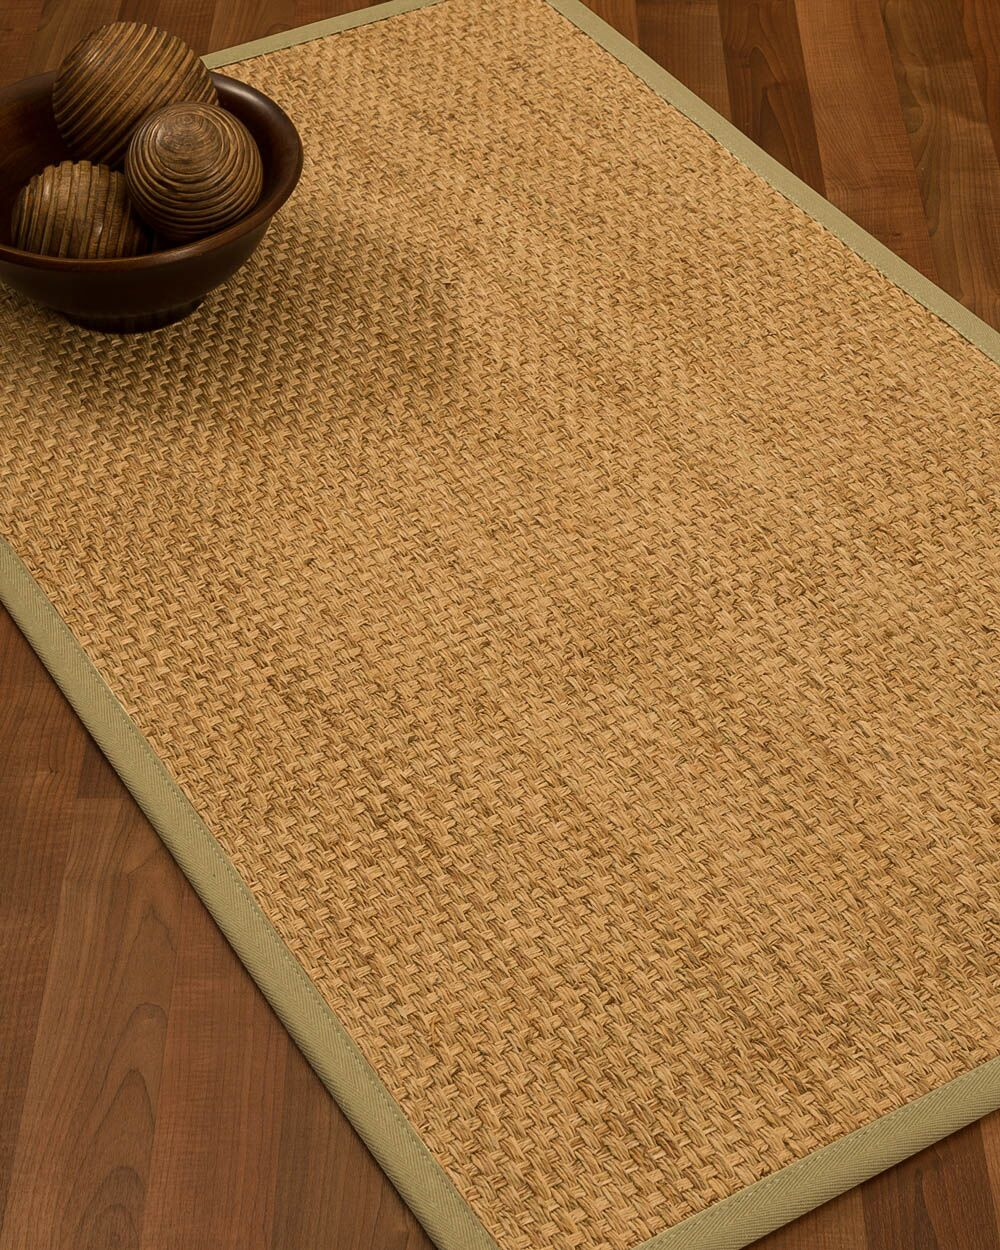 Caster Border Hand-Woven Beige/Sand Area Rug Rug Size: Rectangle 6' x 9', Rug Pad Included: Yes